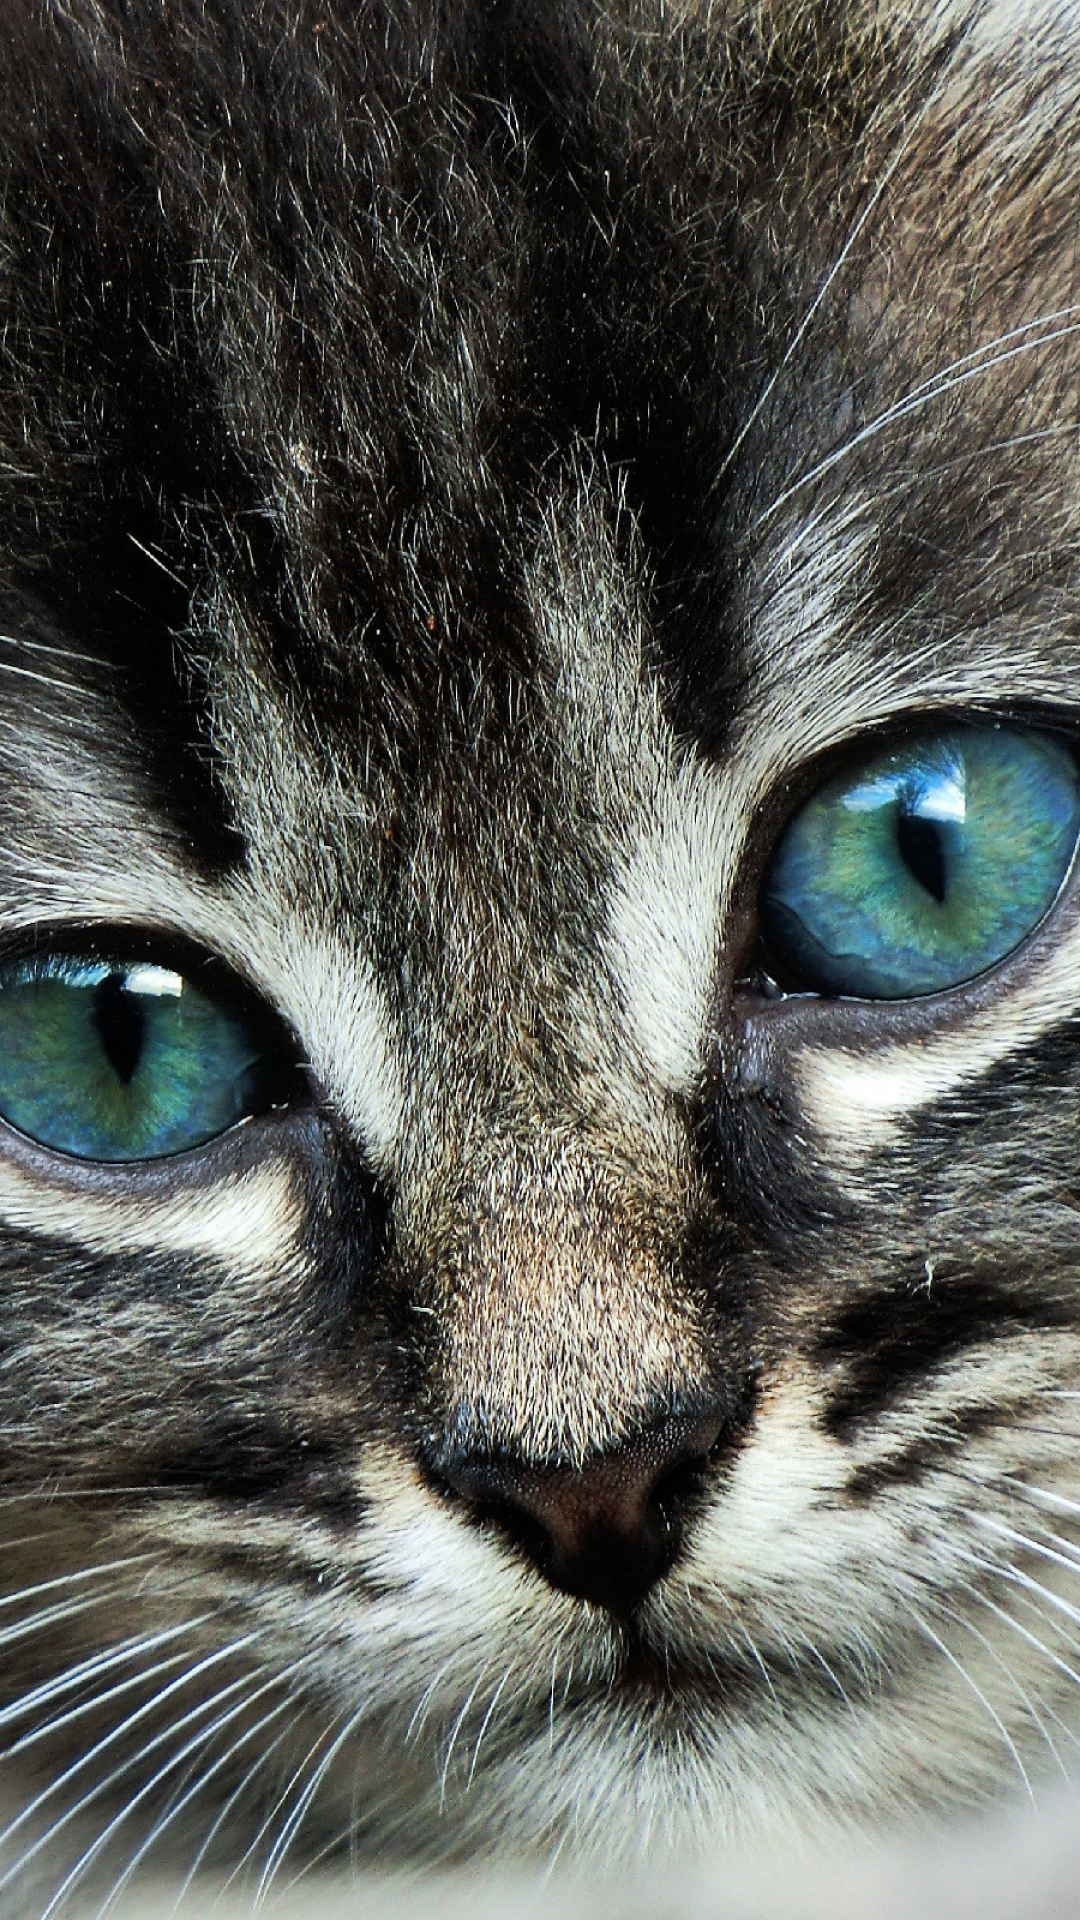 Download-1080x1920-cat-face-eyes-color-Sony-Xperia-Z-ZL-Z-Samsung-Galaxy-S-HTC-On-wallpaper-wpc5804349